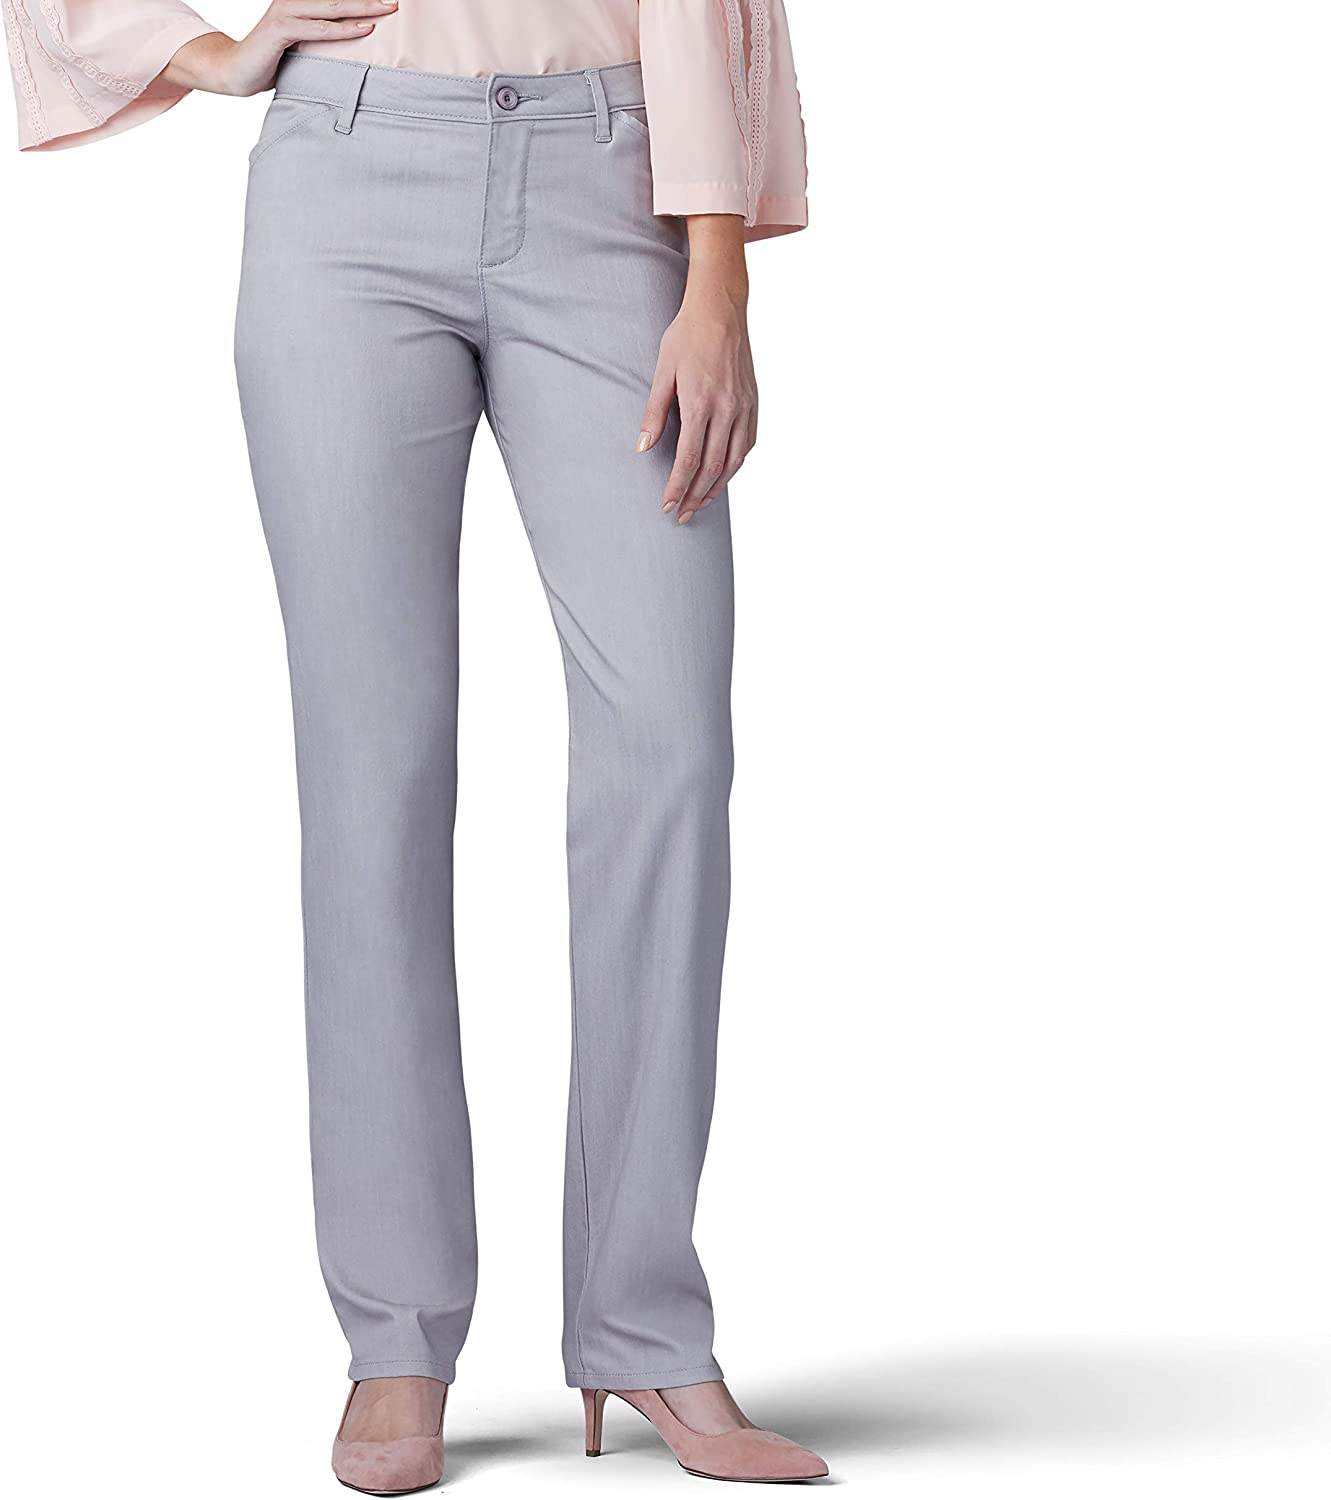 LEE Women/'s Petite Relaxed Fit All Day Straight Leg Pant